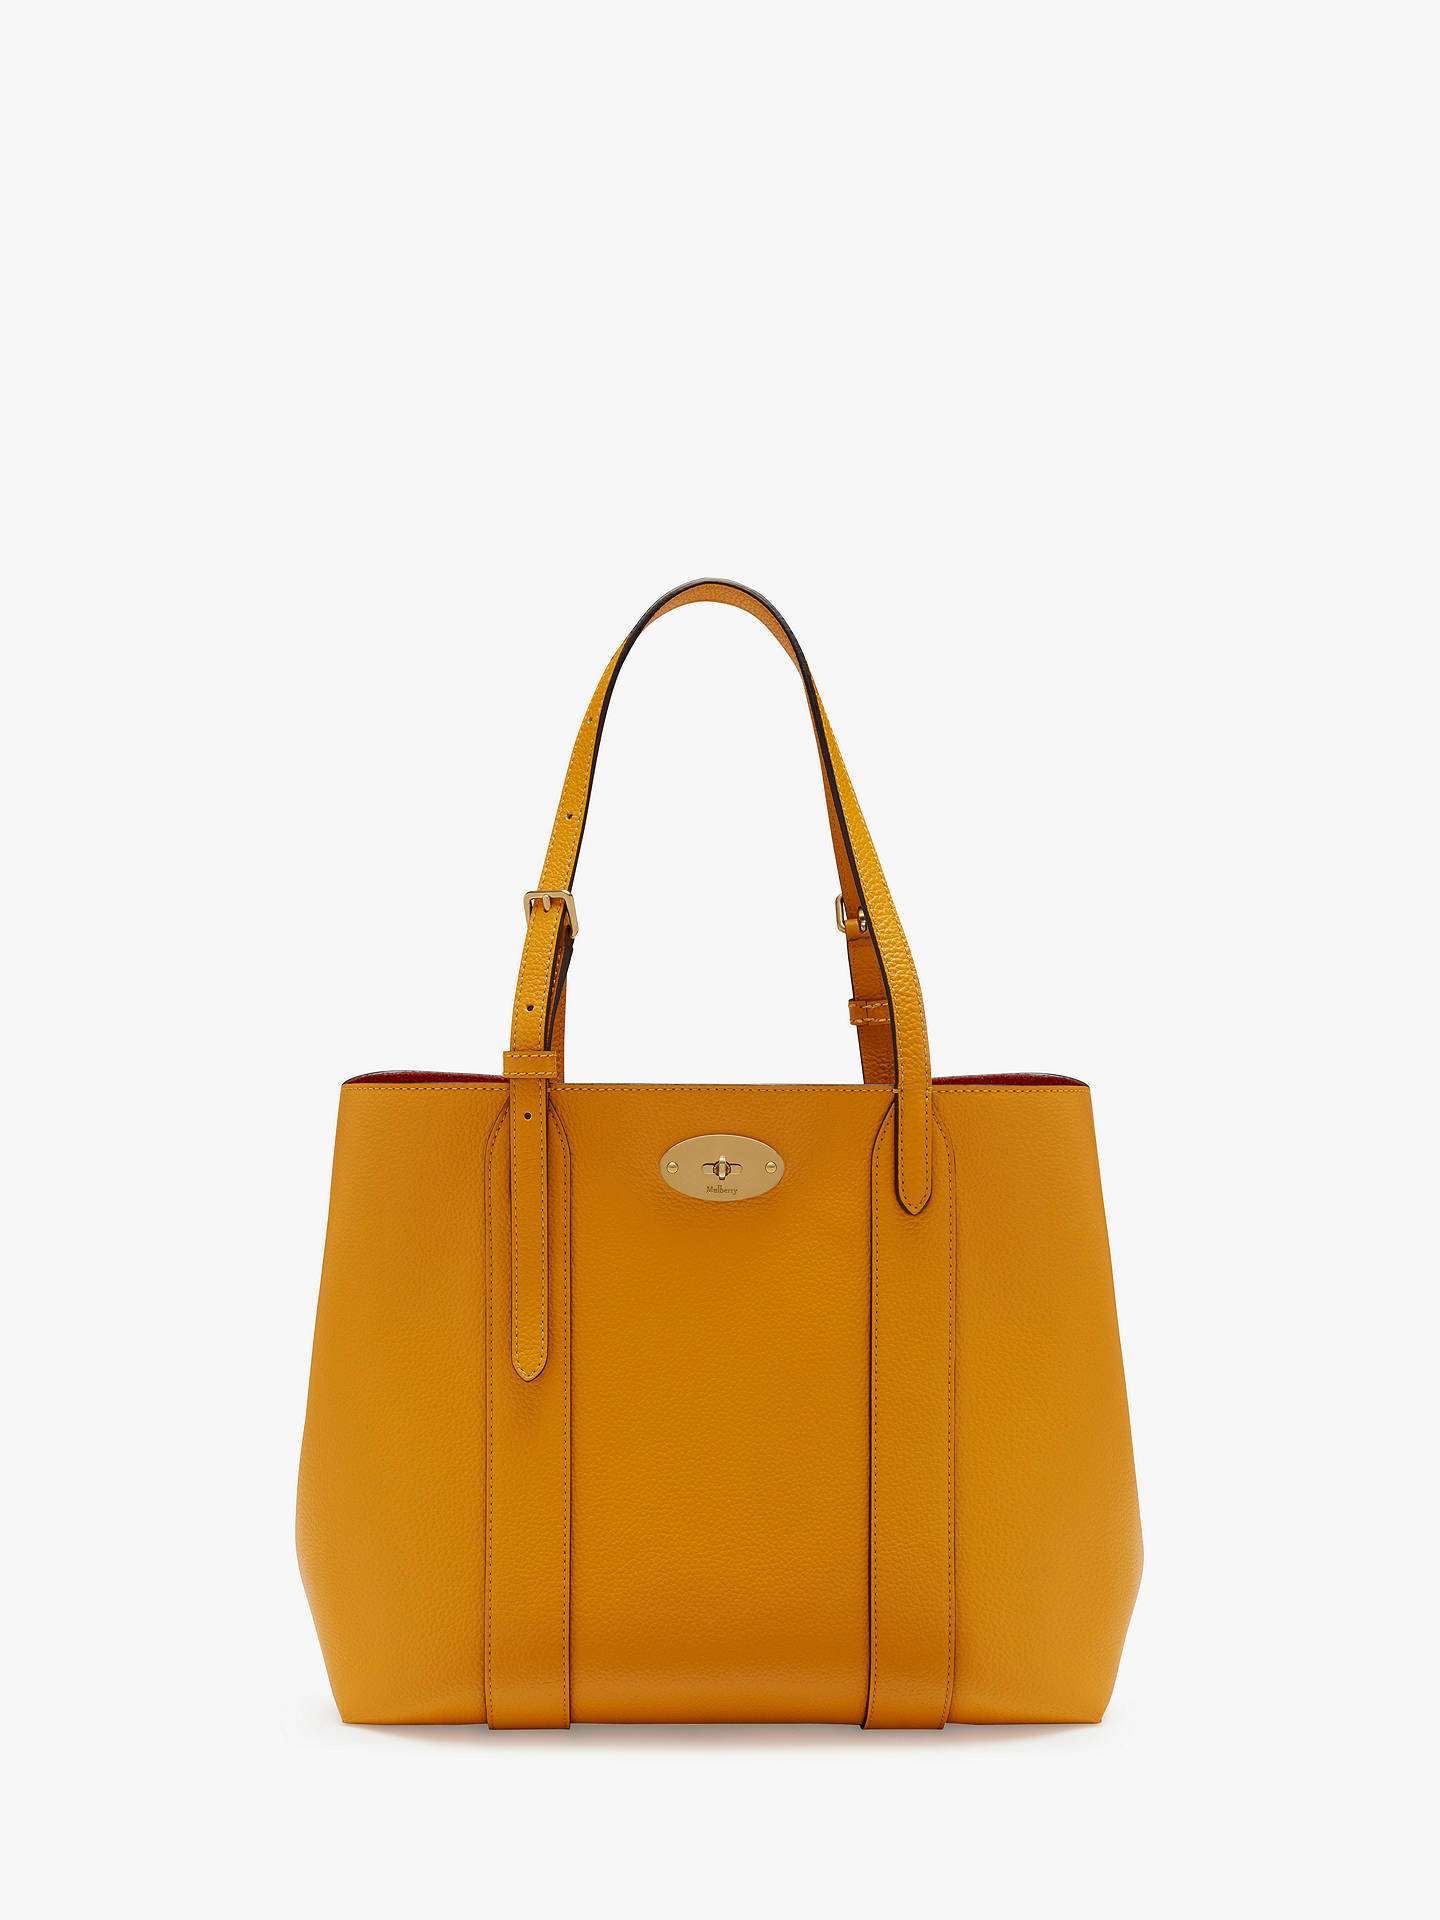 6f1b2d9ef95 Mulberry Small Bayswater Classic Grain Leather Tote Bag at John ...